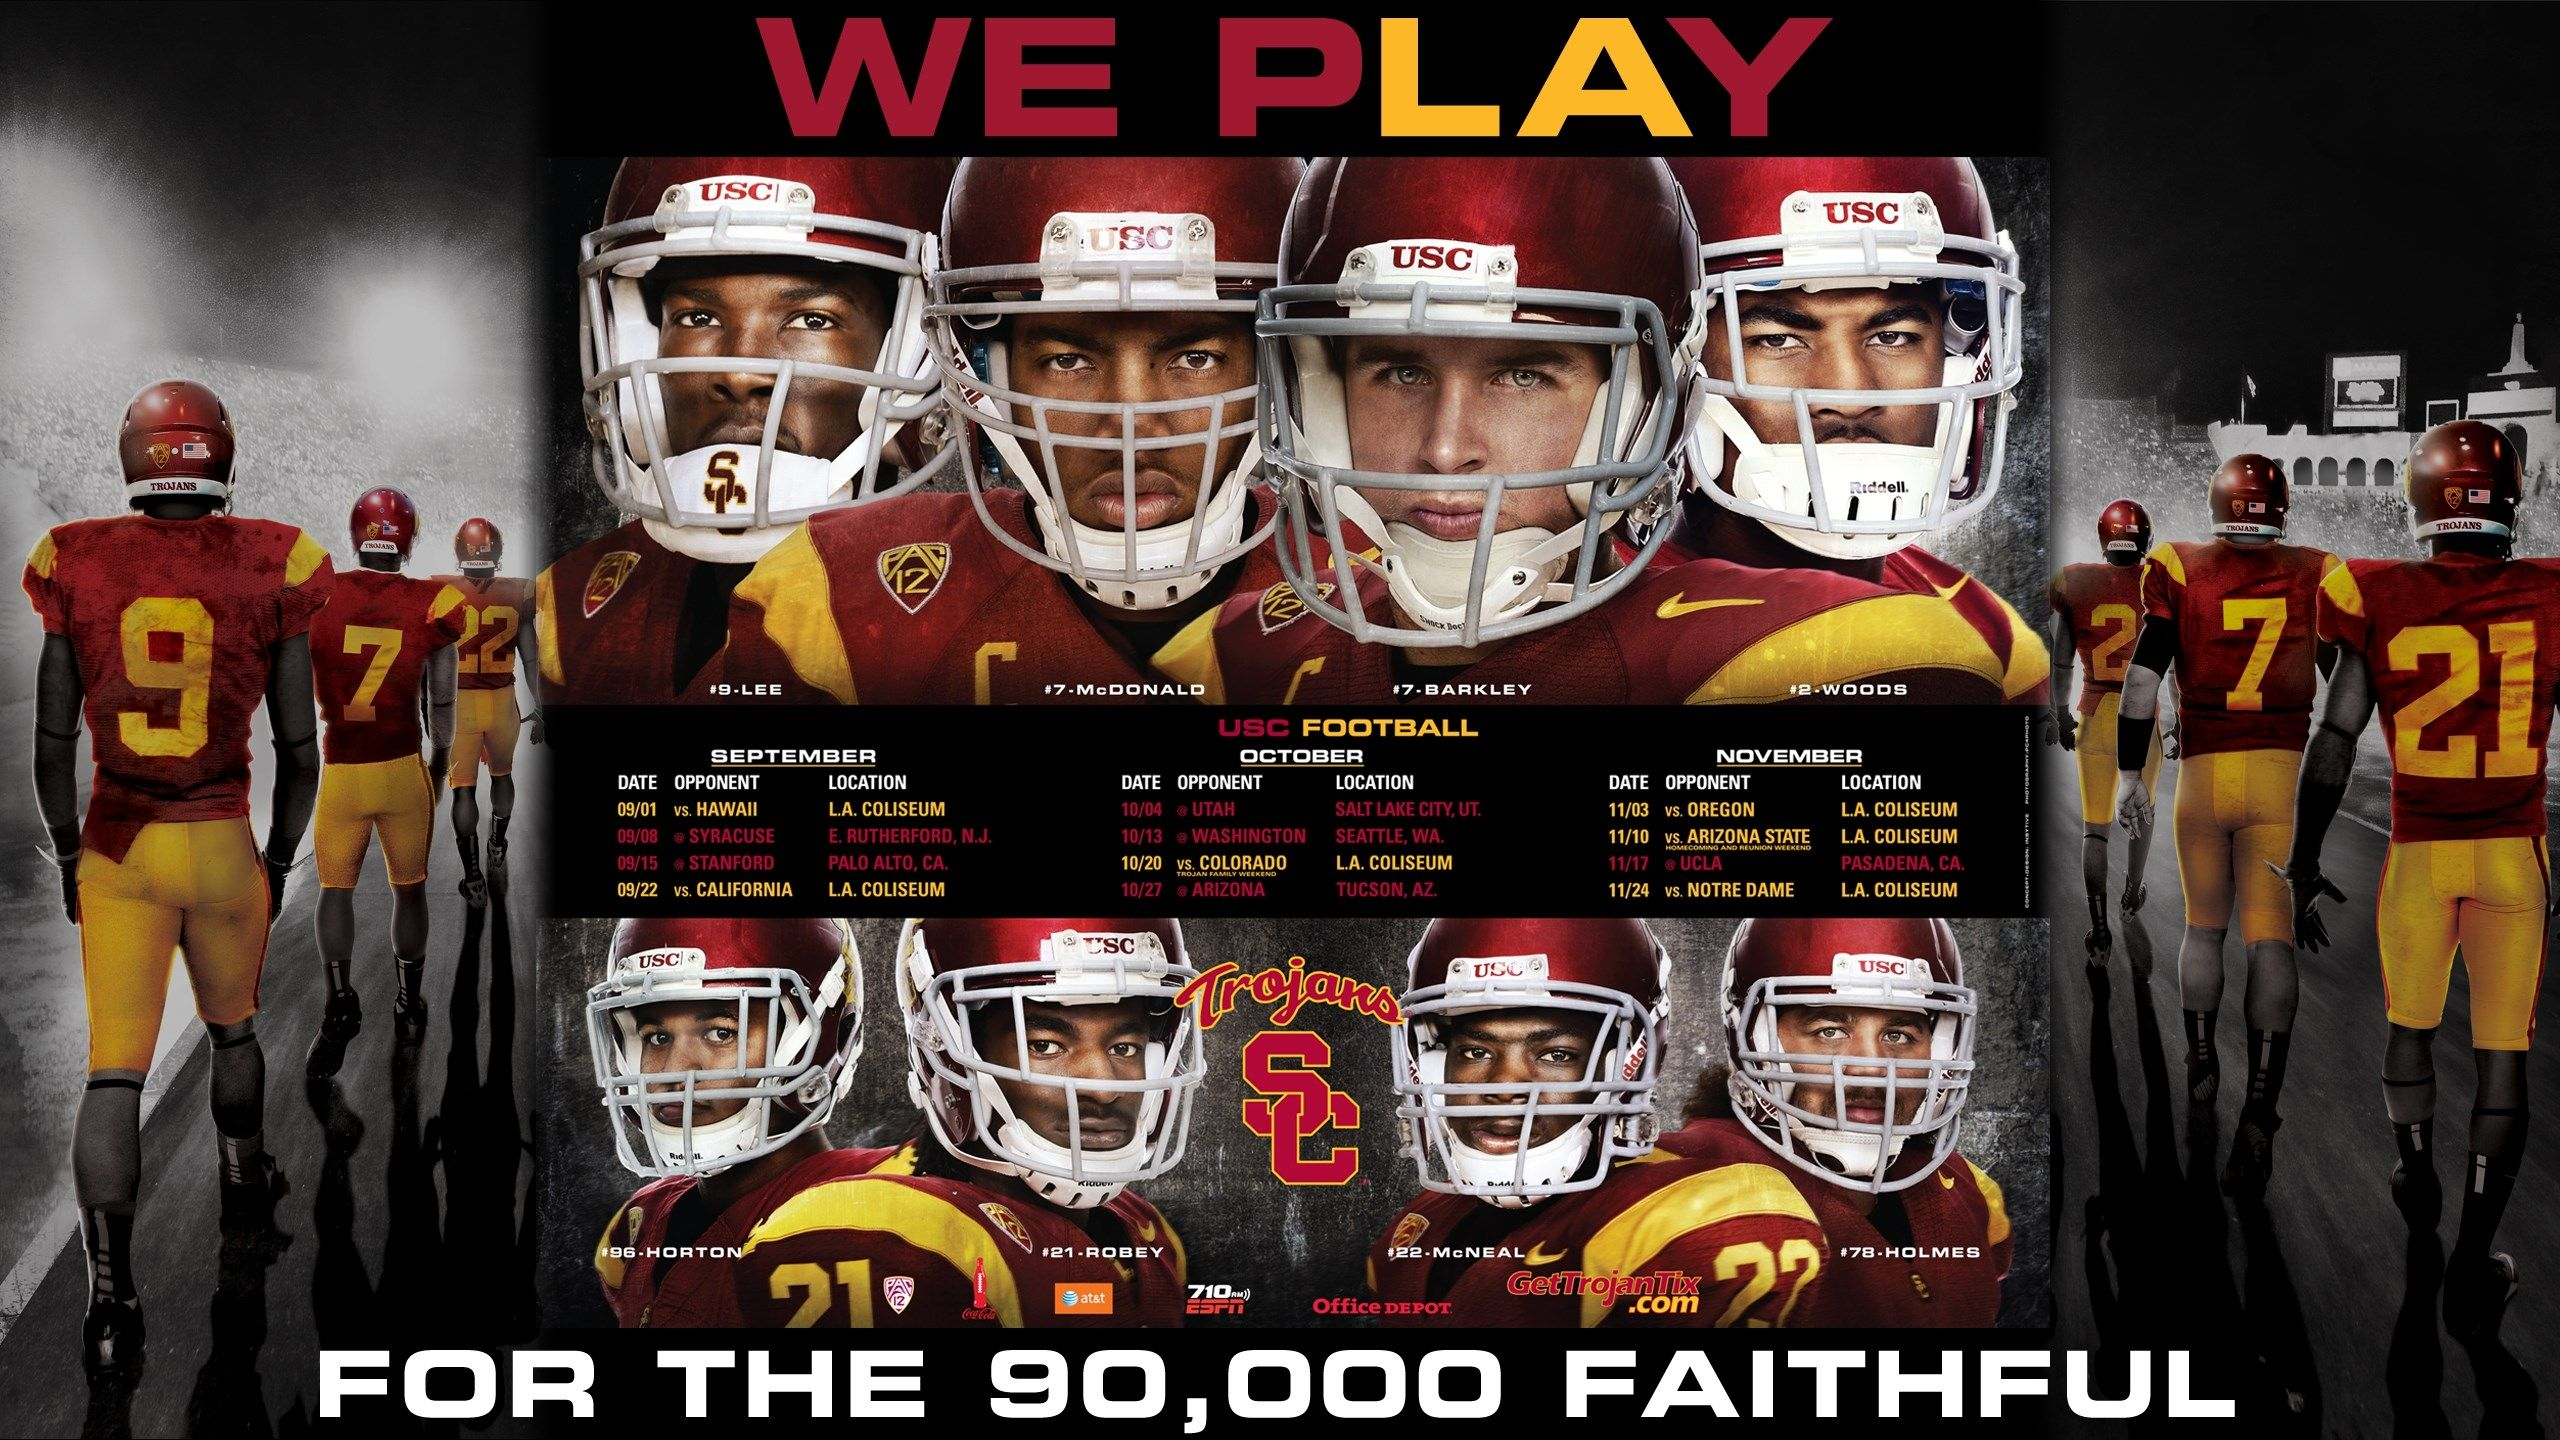 Usc Football Pictures Usc Football Football Football Poster